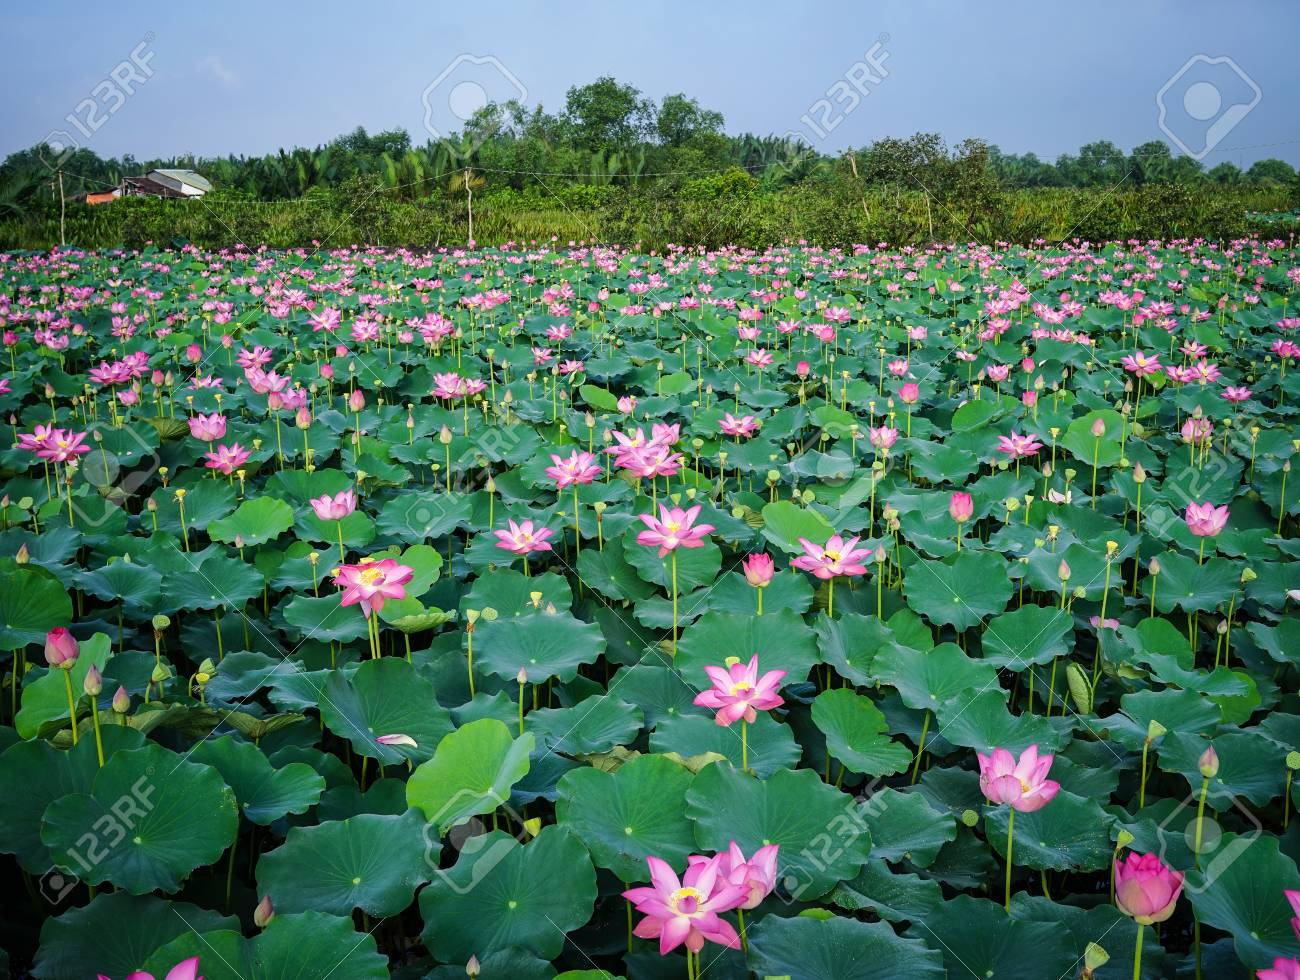 Landscape of lotus flower field under sun lights lotus flowers landscape of lotus flower field under sun lights lotus flowers enjoy warm sunlight and are izmirmasajfo